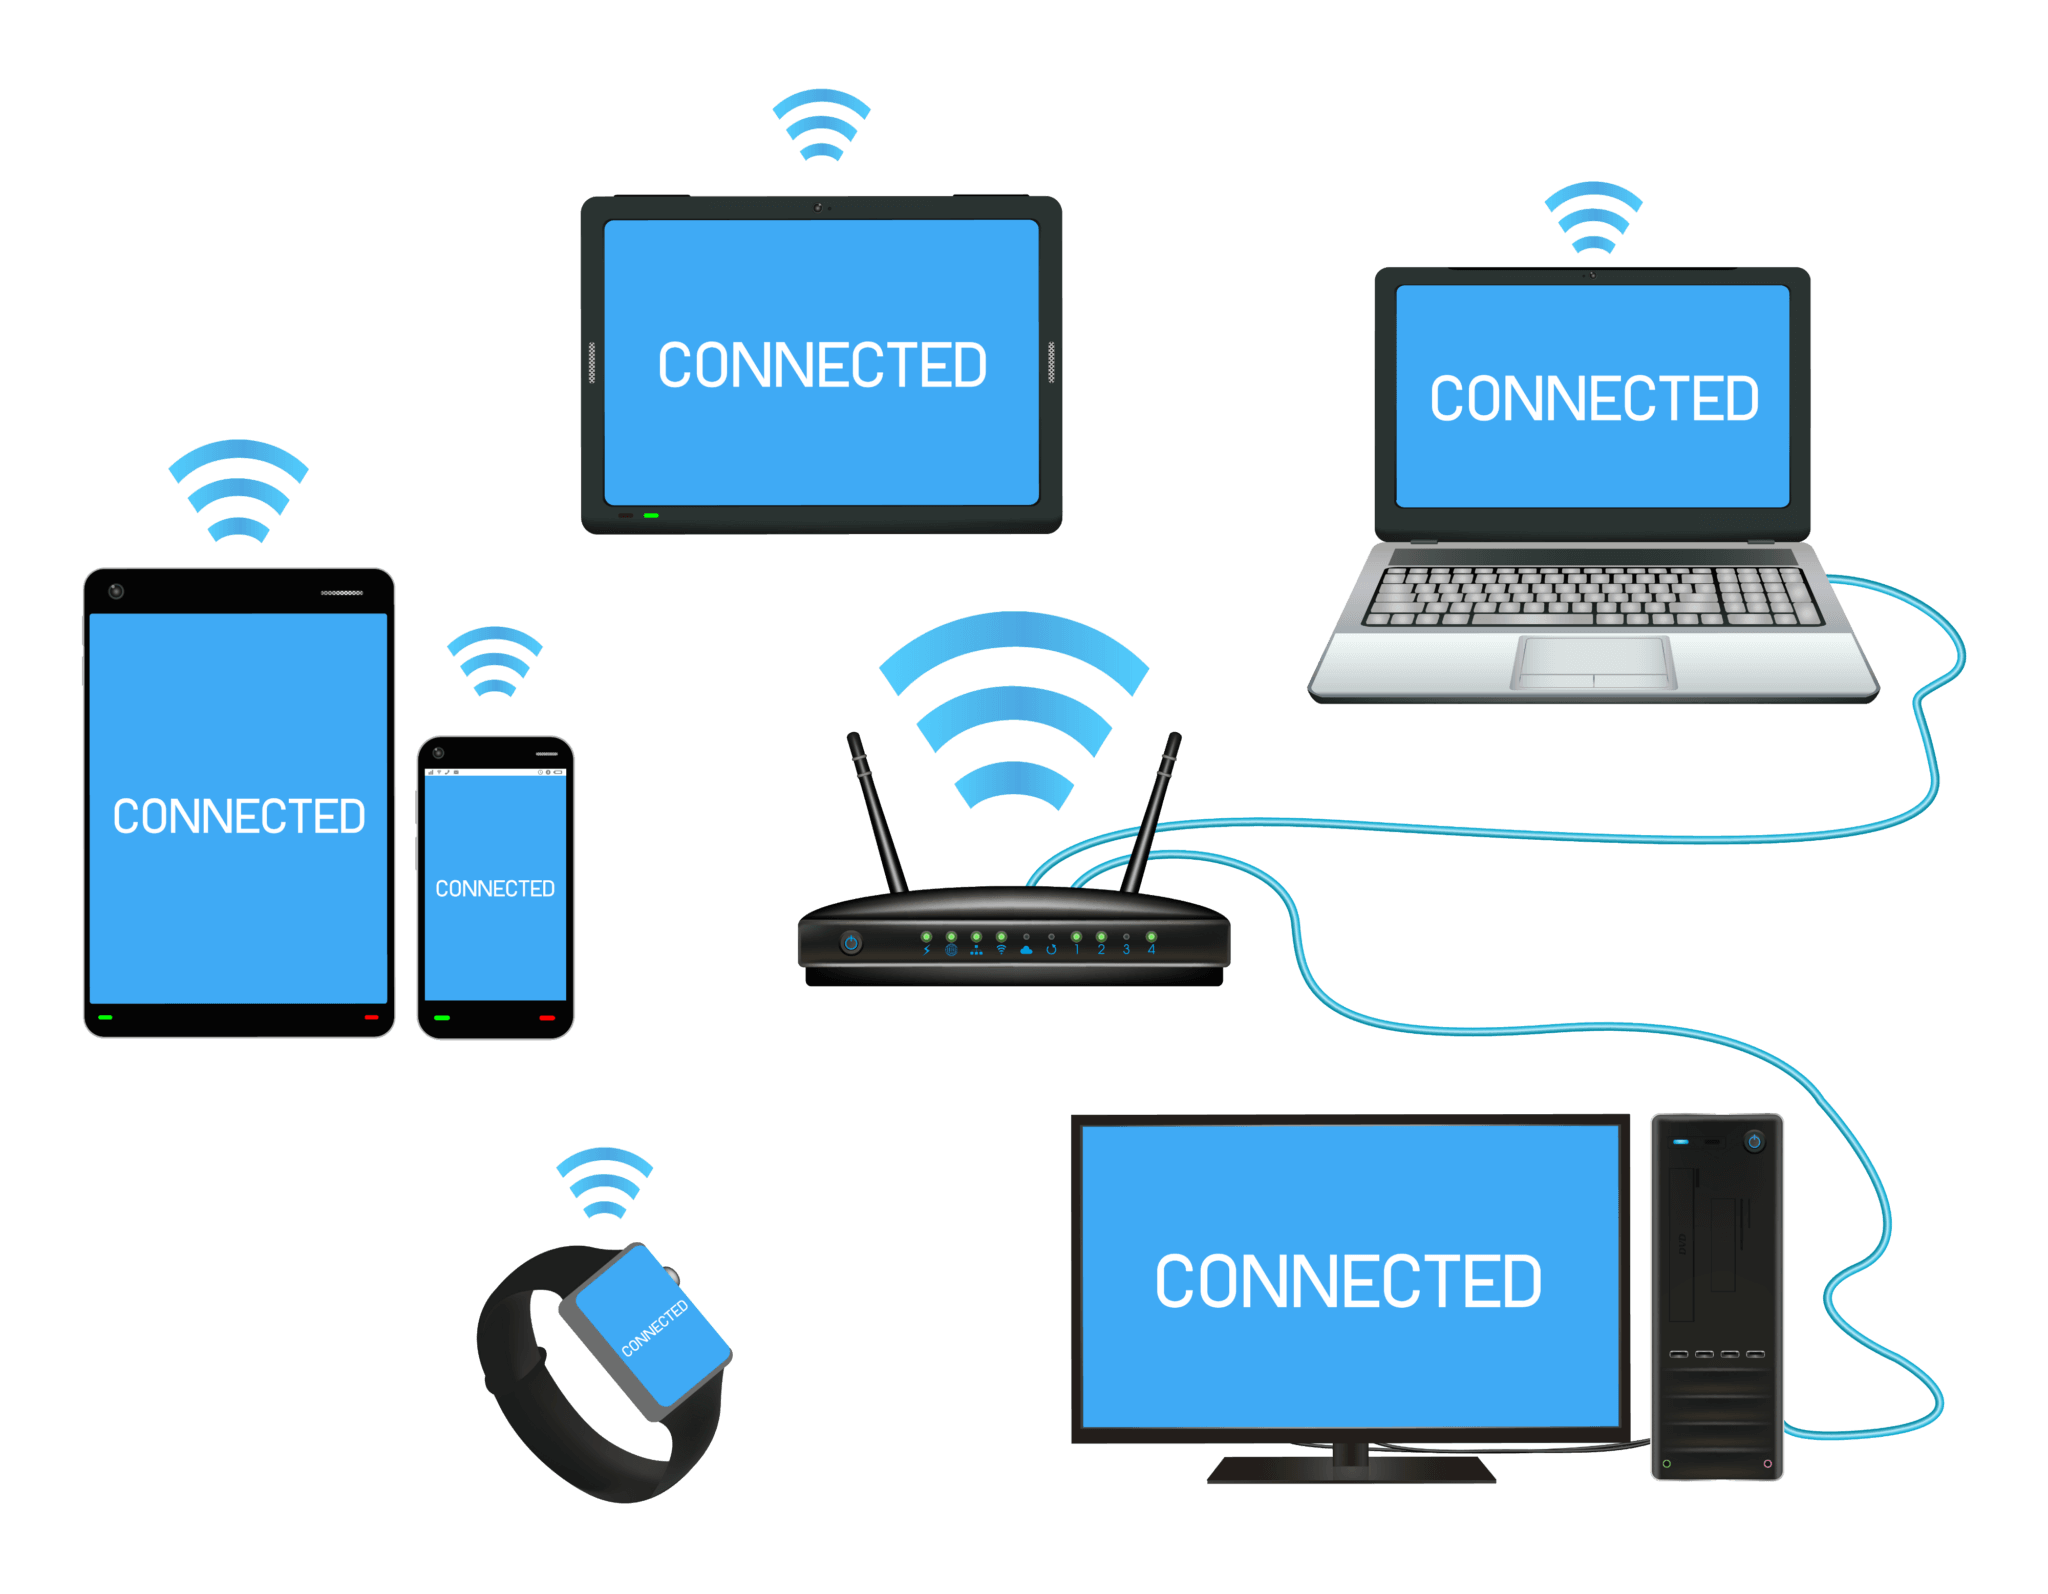 The many different WiFi devices in a home or business